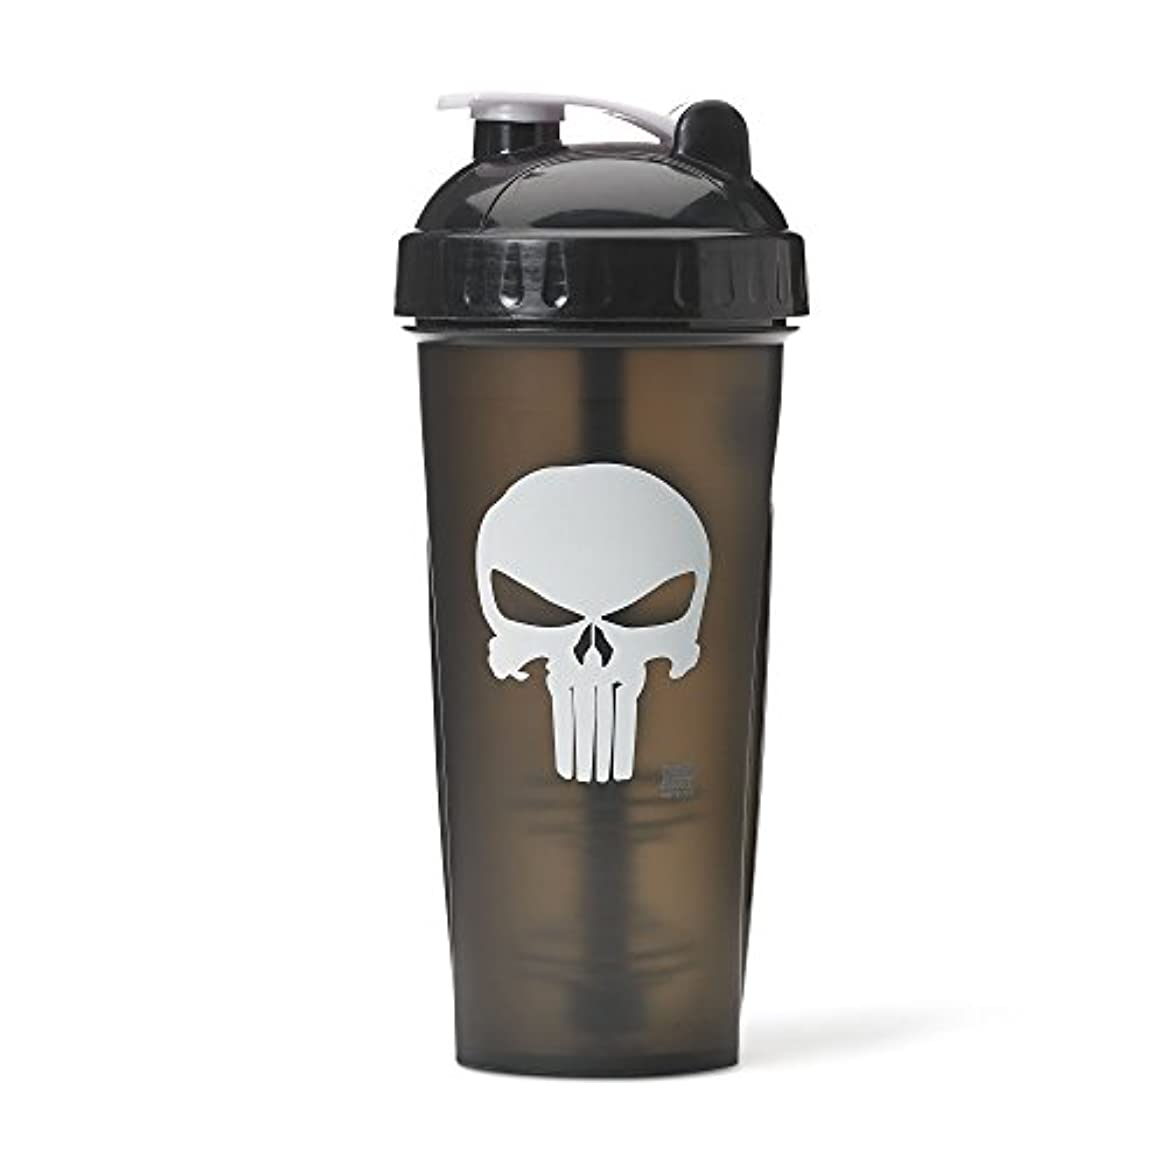 つまずくに対して驚いたPerforma Marvel Shaker - Original Series, Leak Free Protein Shaker Bottle with Actionrod Mixing Technology for...